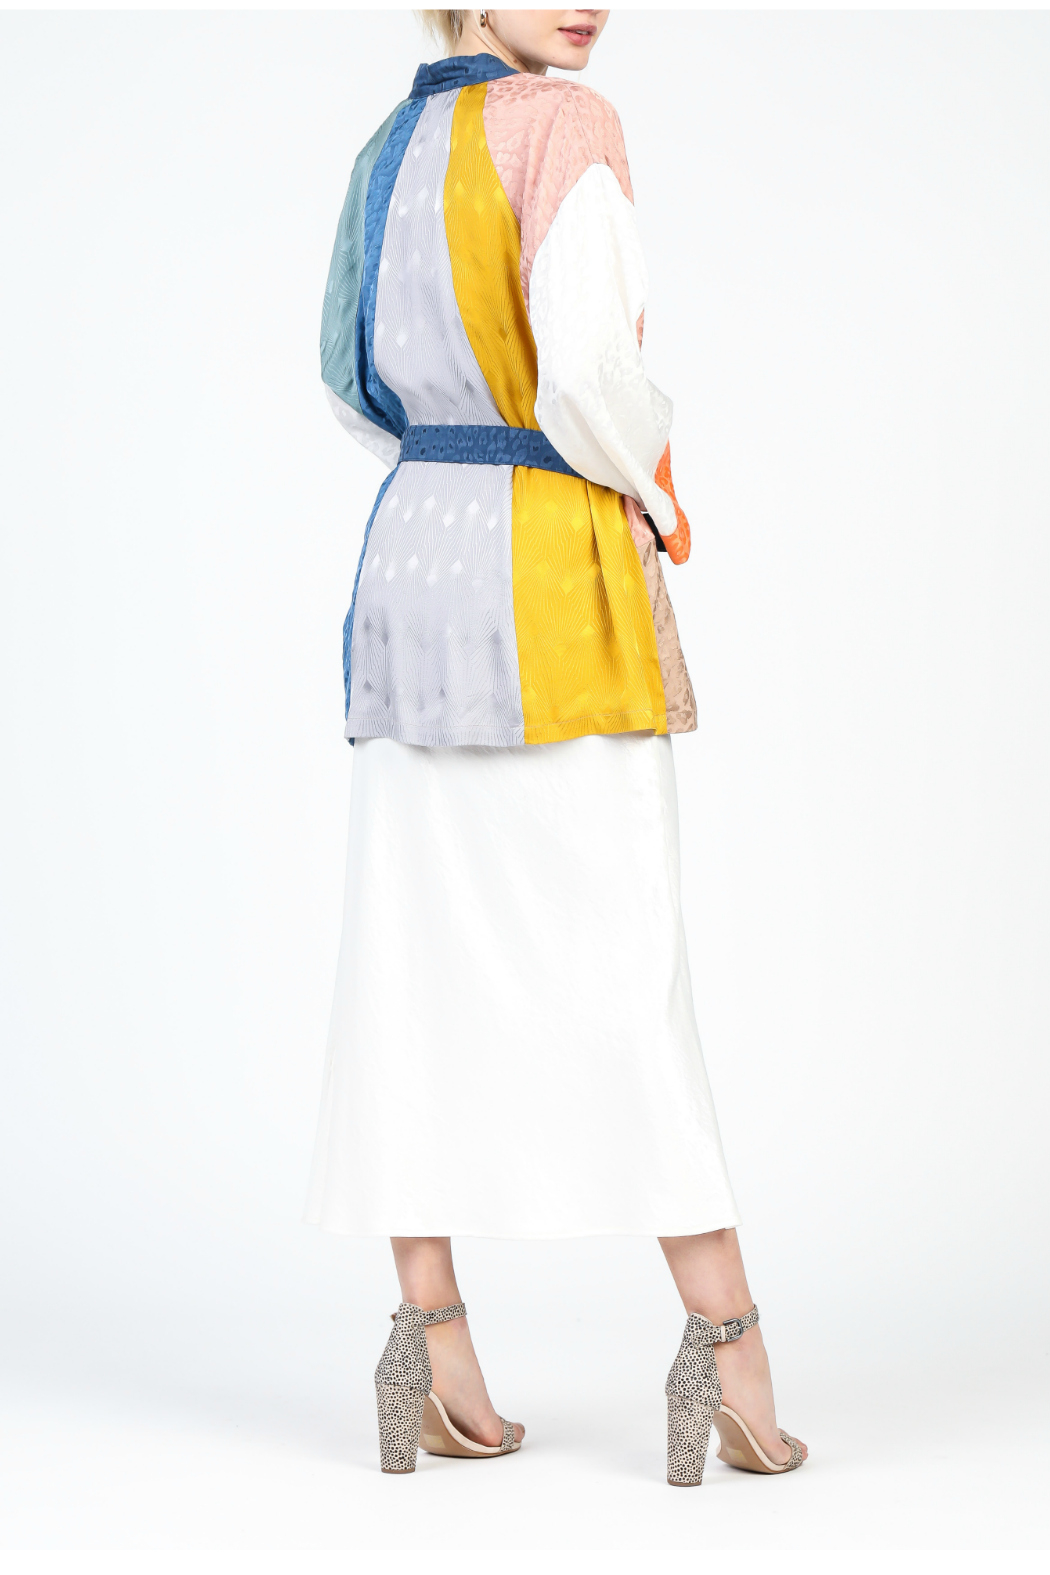 Current Air Color Block Kimono - Front Full Image